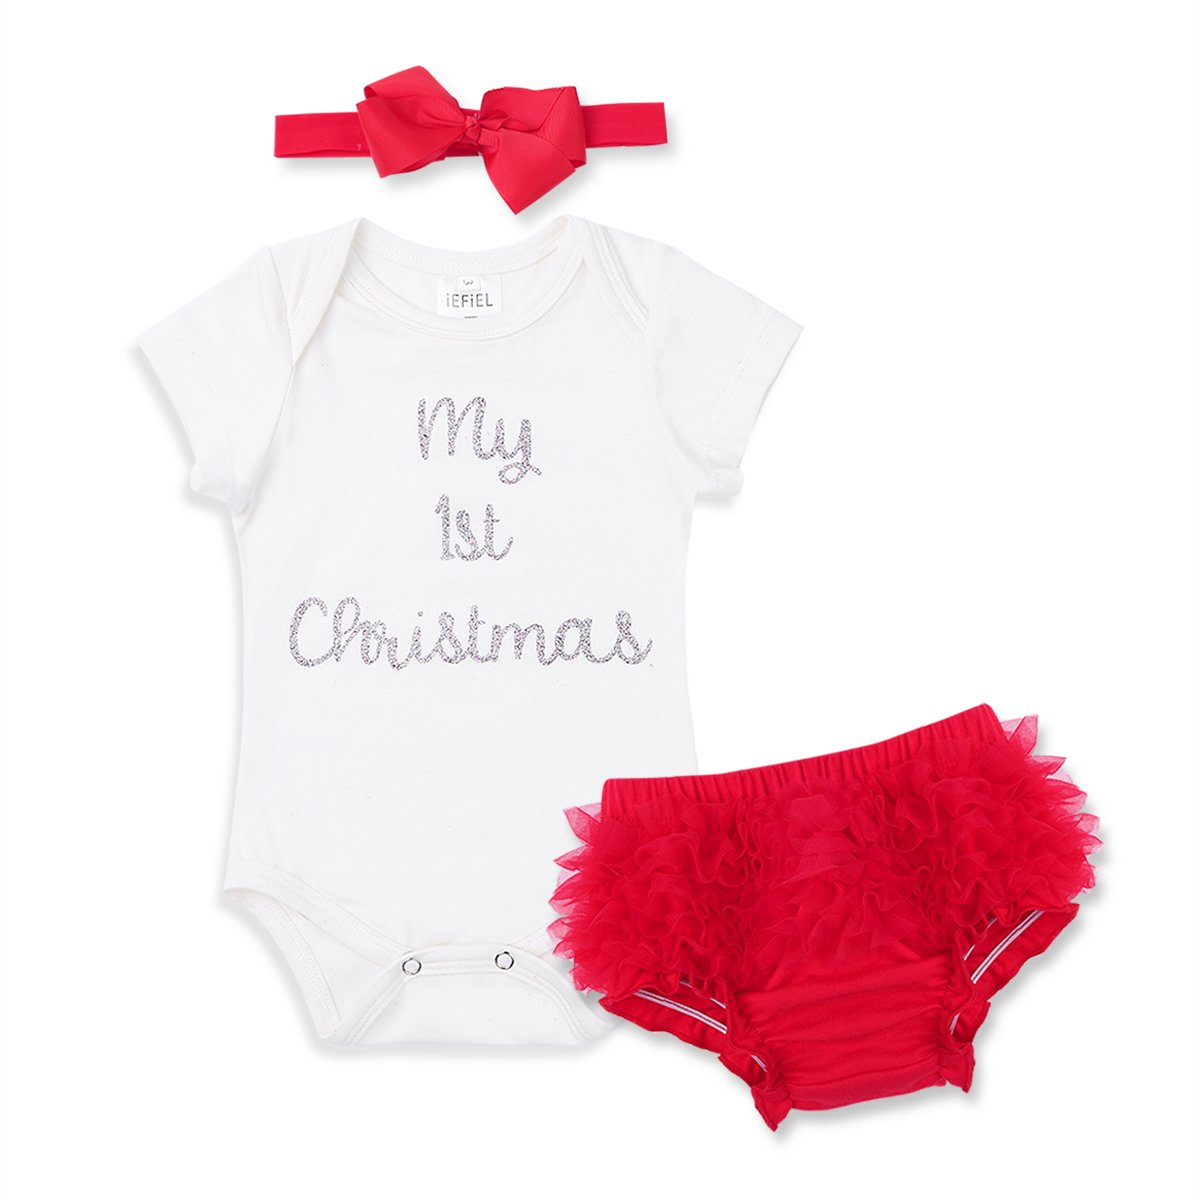 FEESHOW Infant Baby Girls My 1st Christmas Outfits Costumes Romper Bodysuit with Tutu Skirt Headband Set